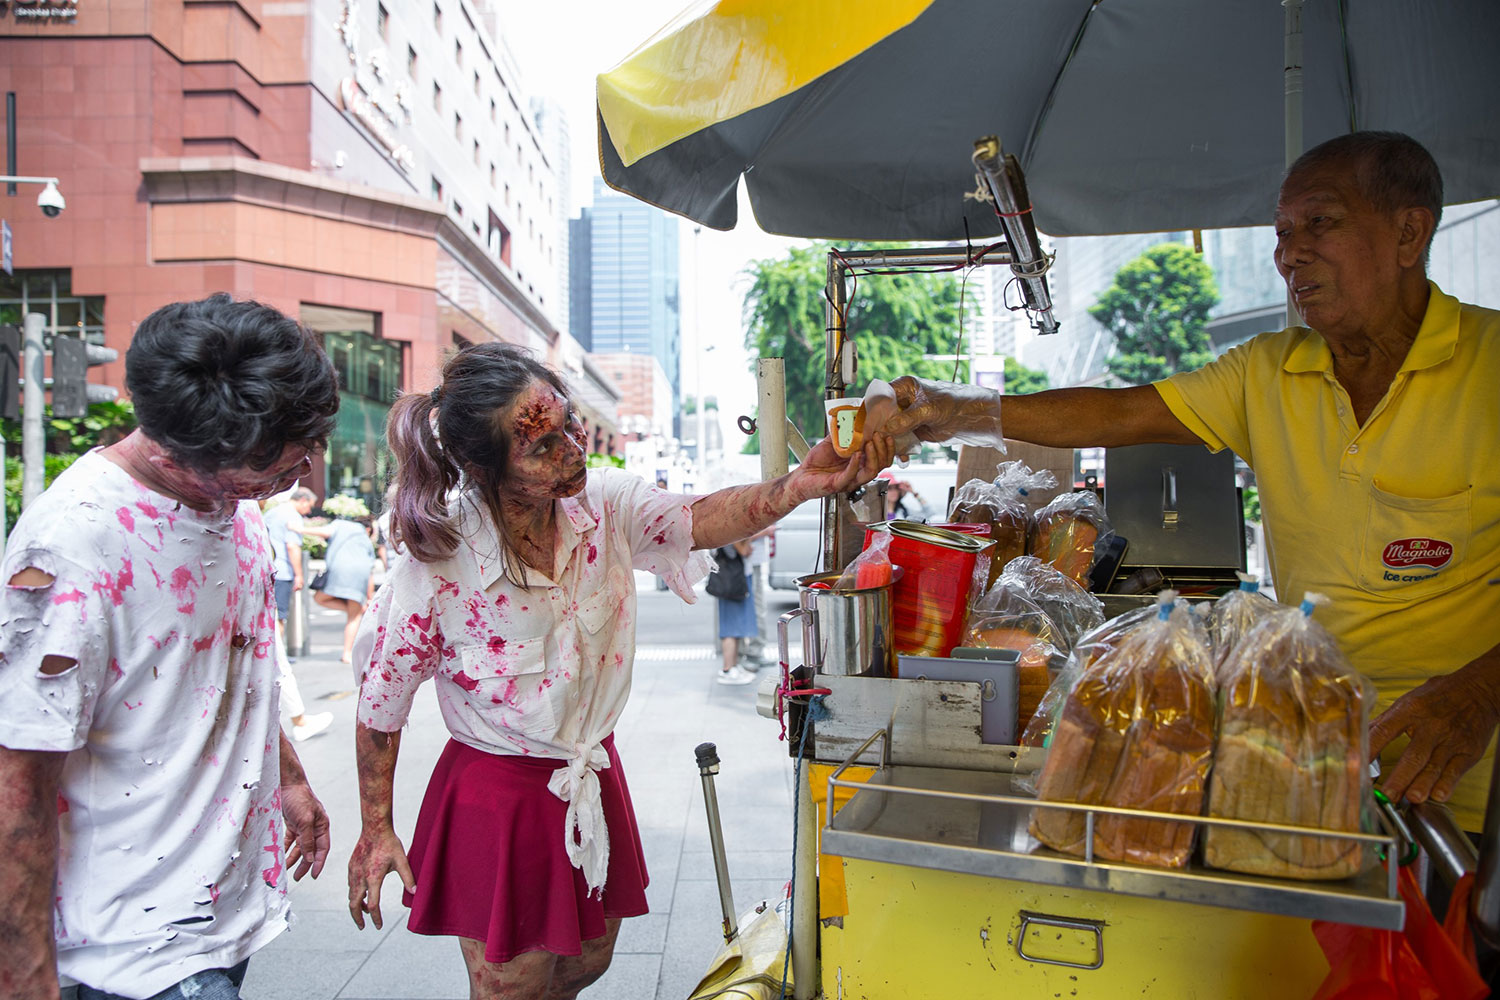 Zombies-purchasing-Ice-Cream-Bread-at-Orchard-Road